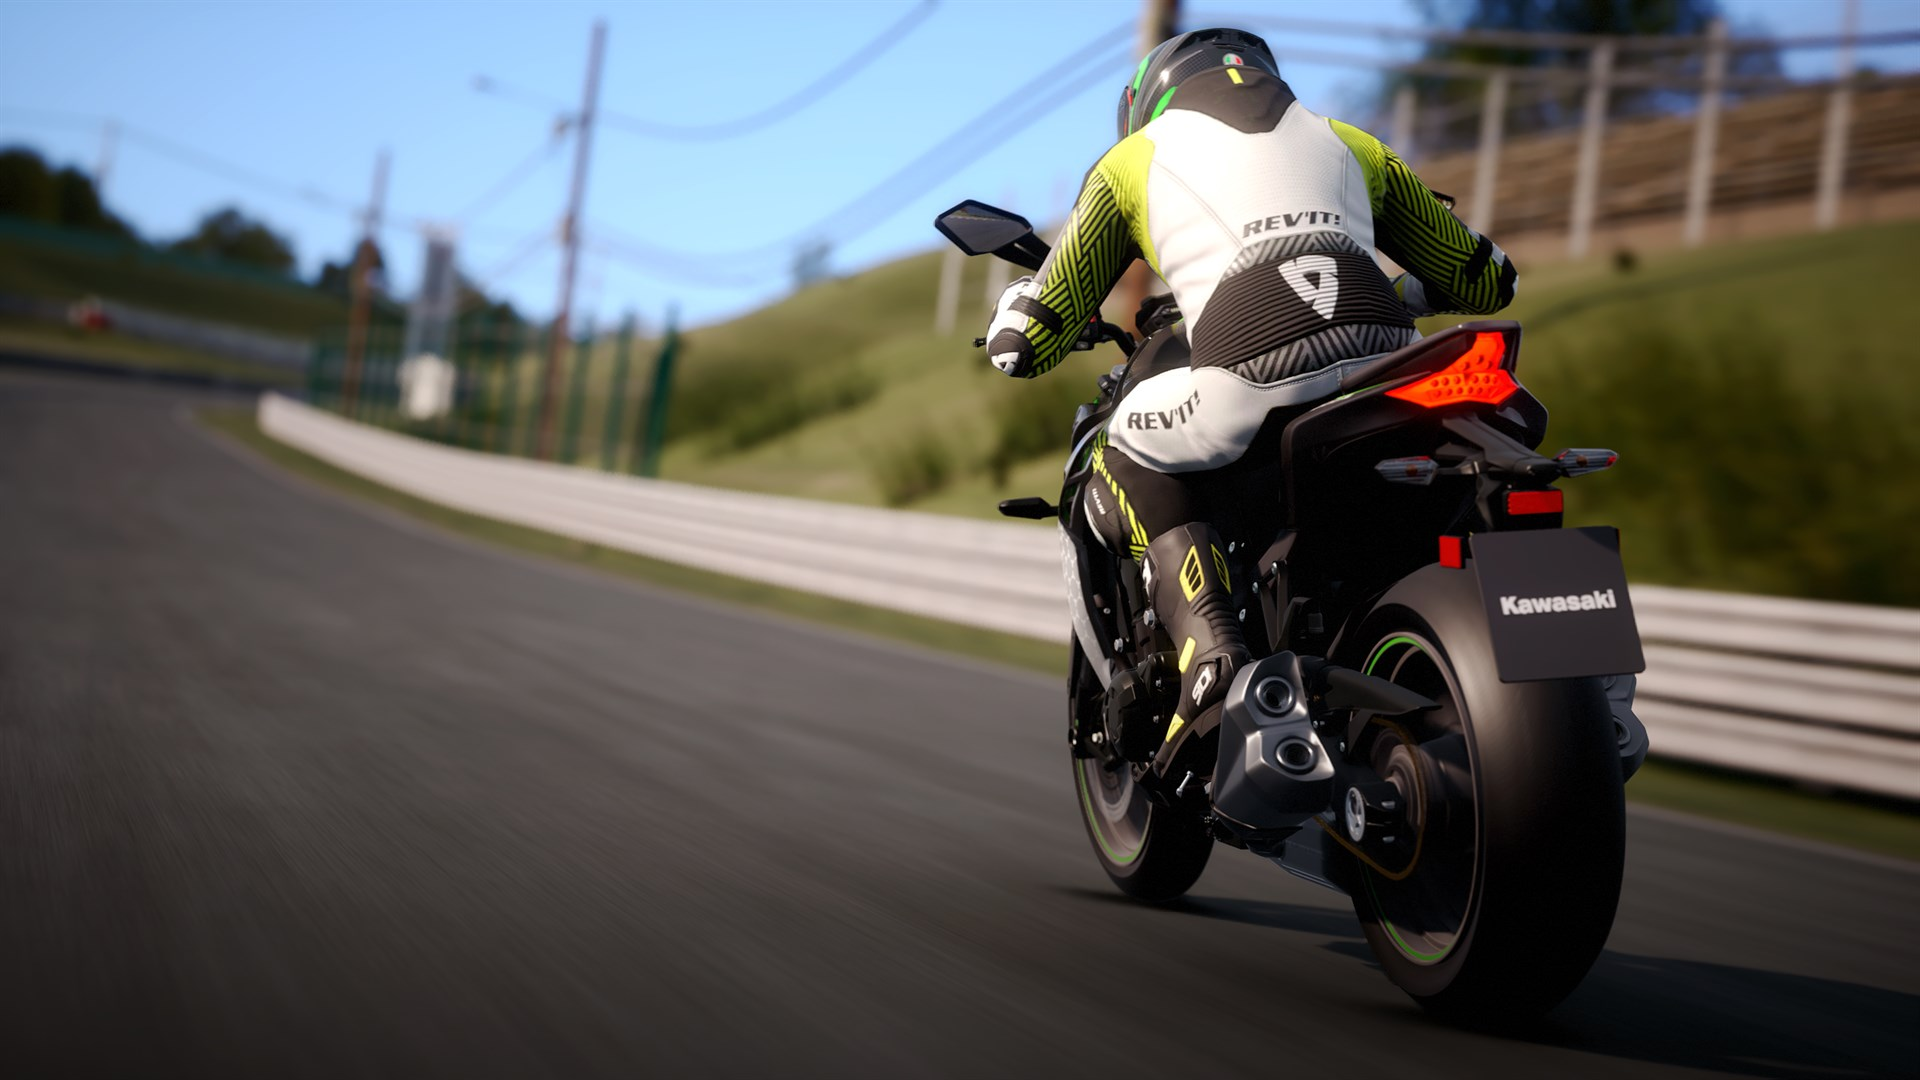 RIDE 4 - Power Naked Pack